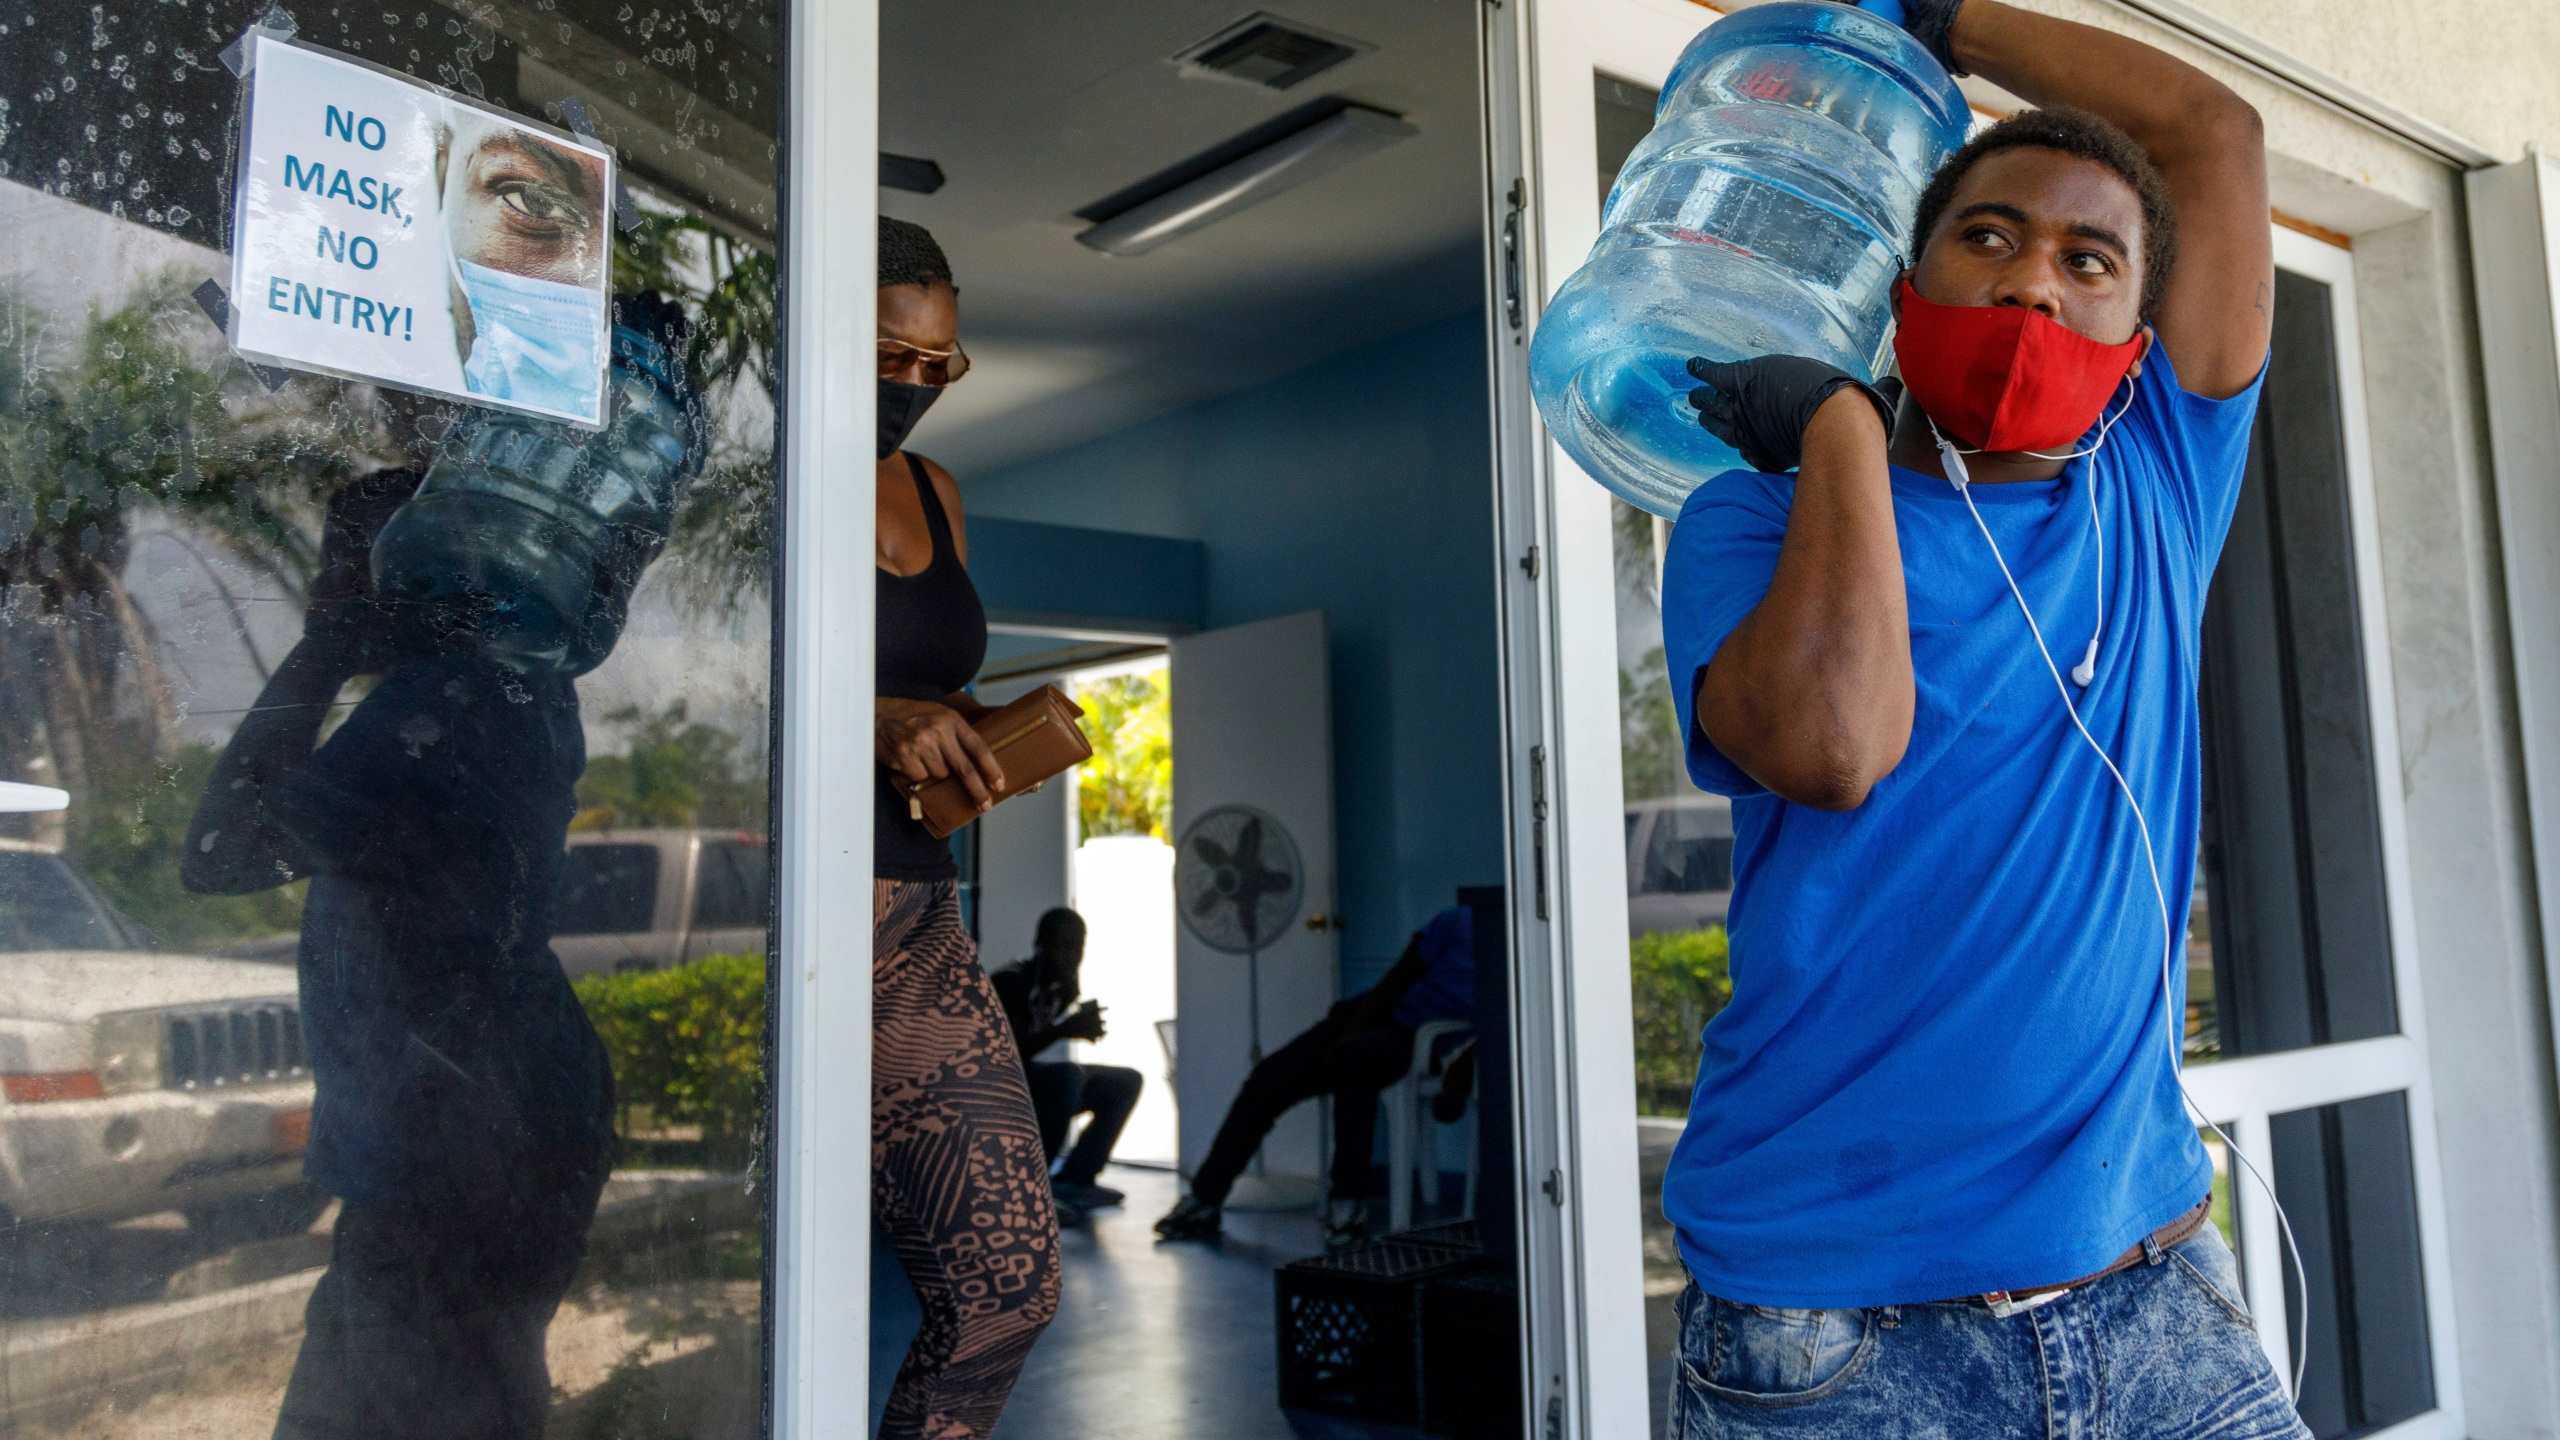 A man carries drinking water for a customer at a water depot store before the arrival of Hurricane Isaias in Freeport, Grand Bahama, Bahamas, on July 31, 2020. (AP Photo/Tim Aylen)